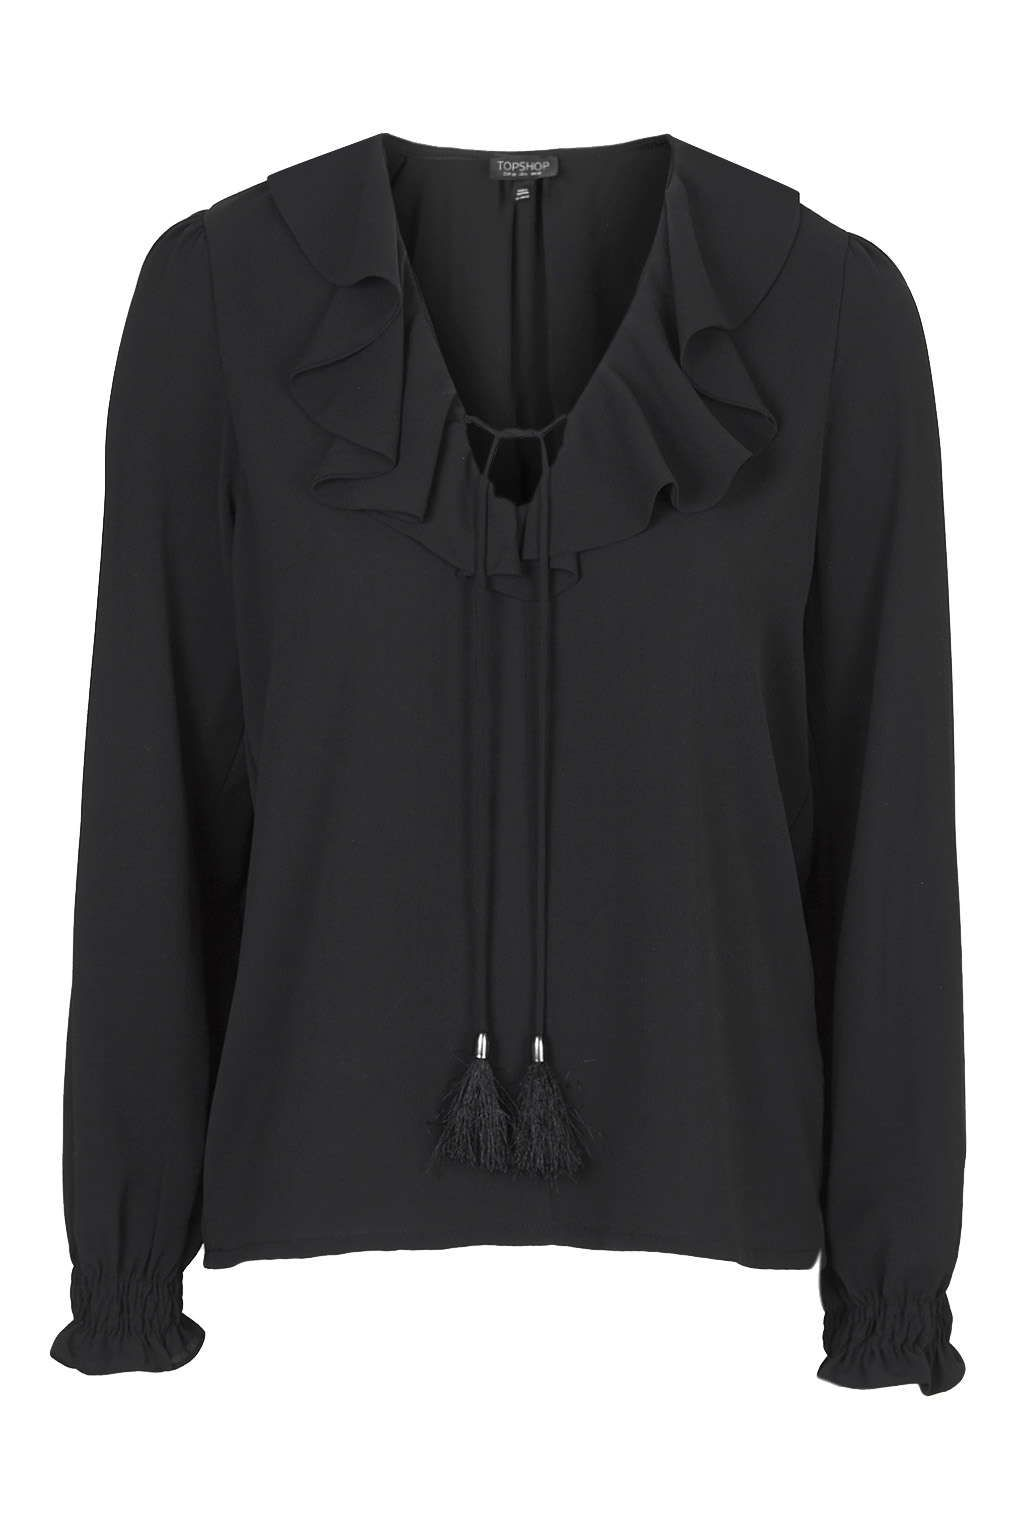 topshop ruffle front blouse in black